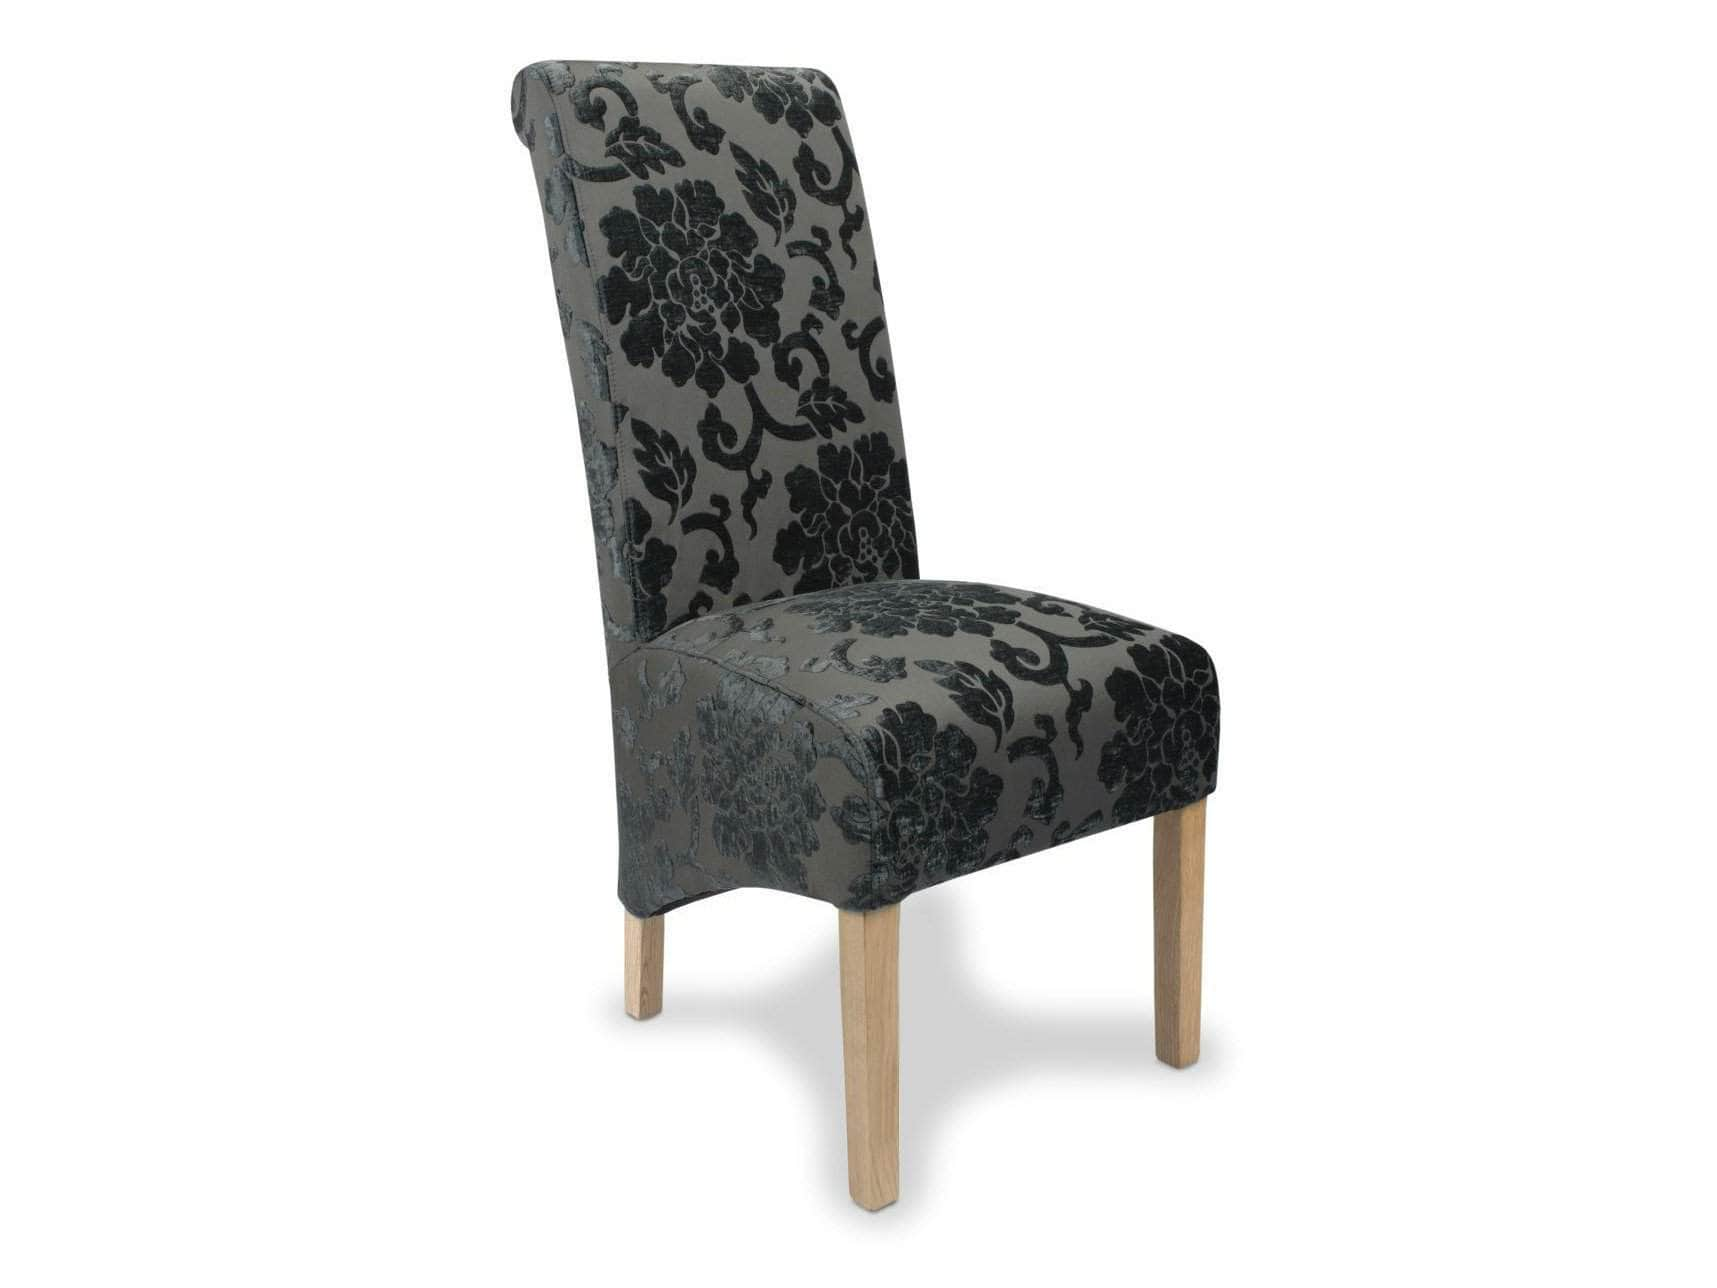 Eltham high back dining chairs with charcoal grey floral-patterned upholstery